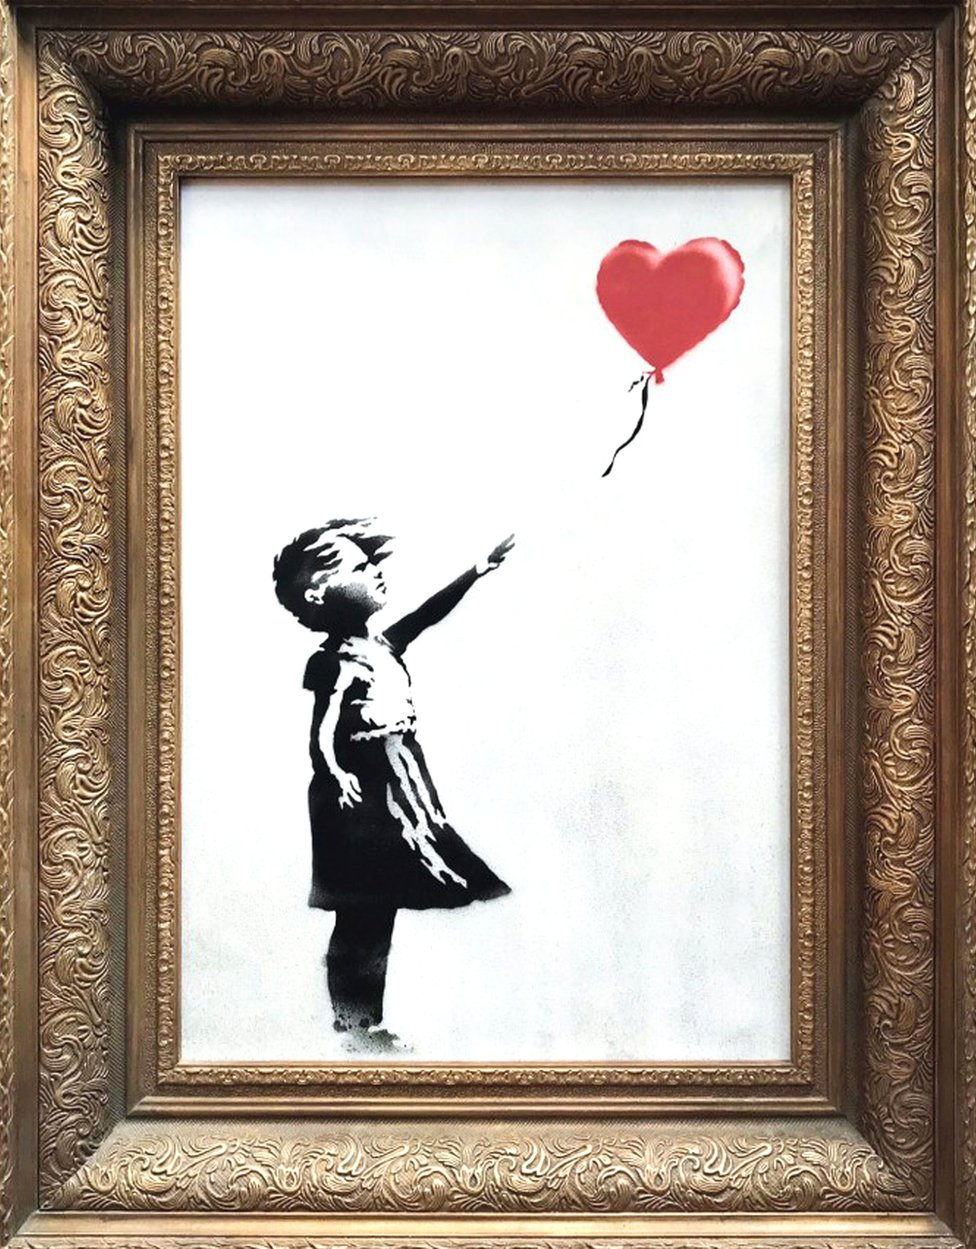 Banksy's Girl With Balloon, 2006